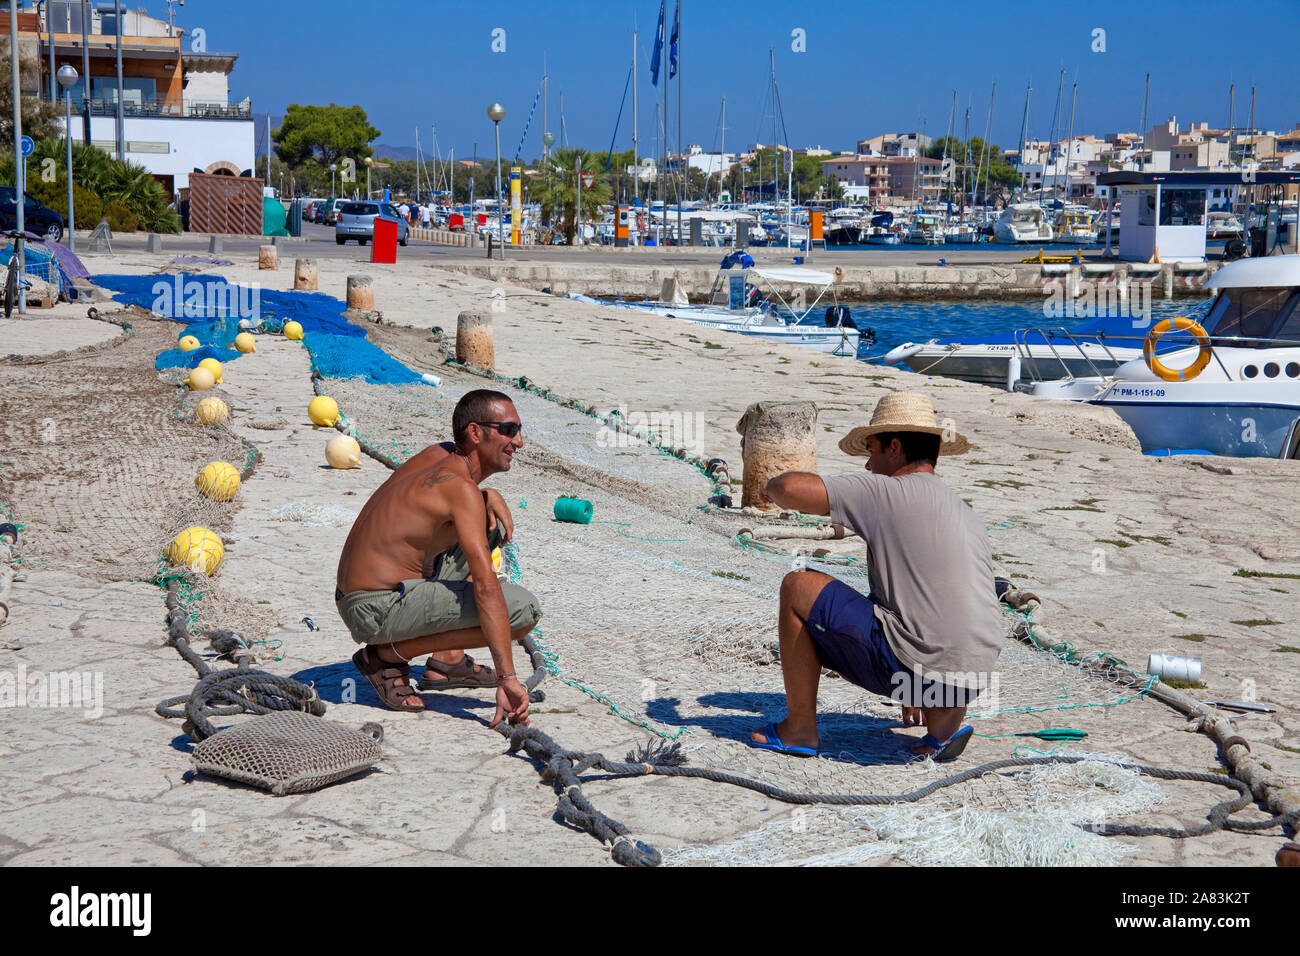 Fishermen repairing their nets at the harbour of Porto Colom, Mallorca, Balearic islands, Spain Stock Photo